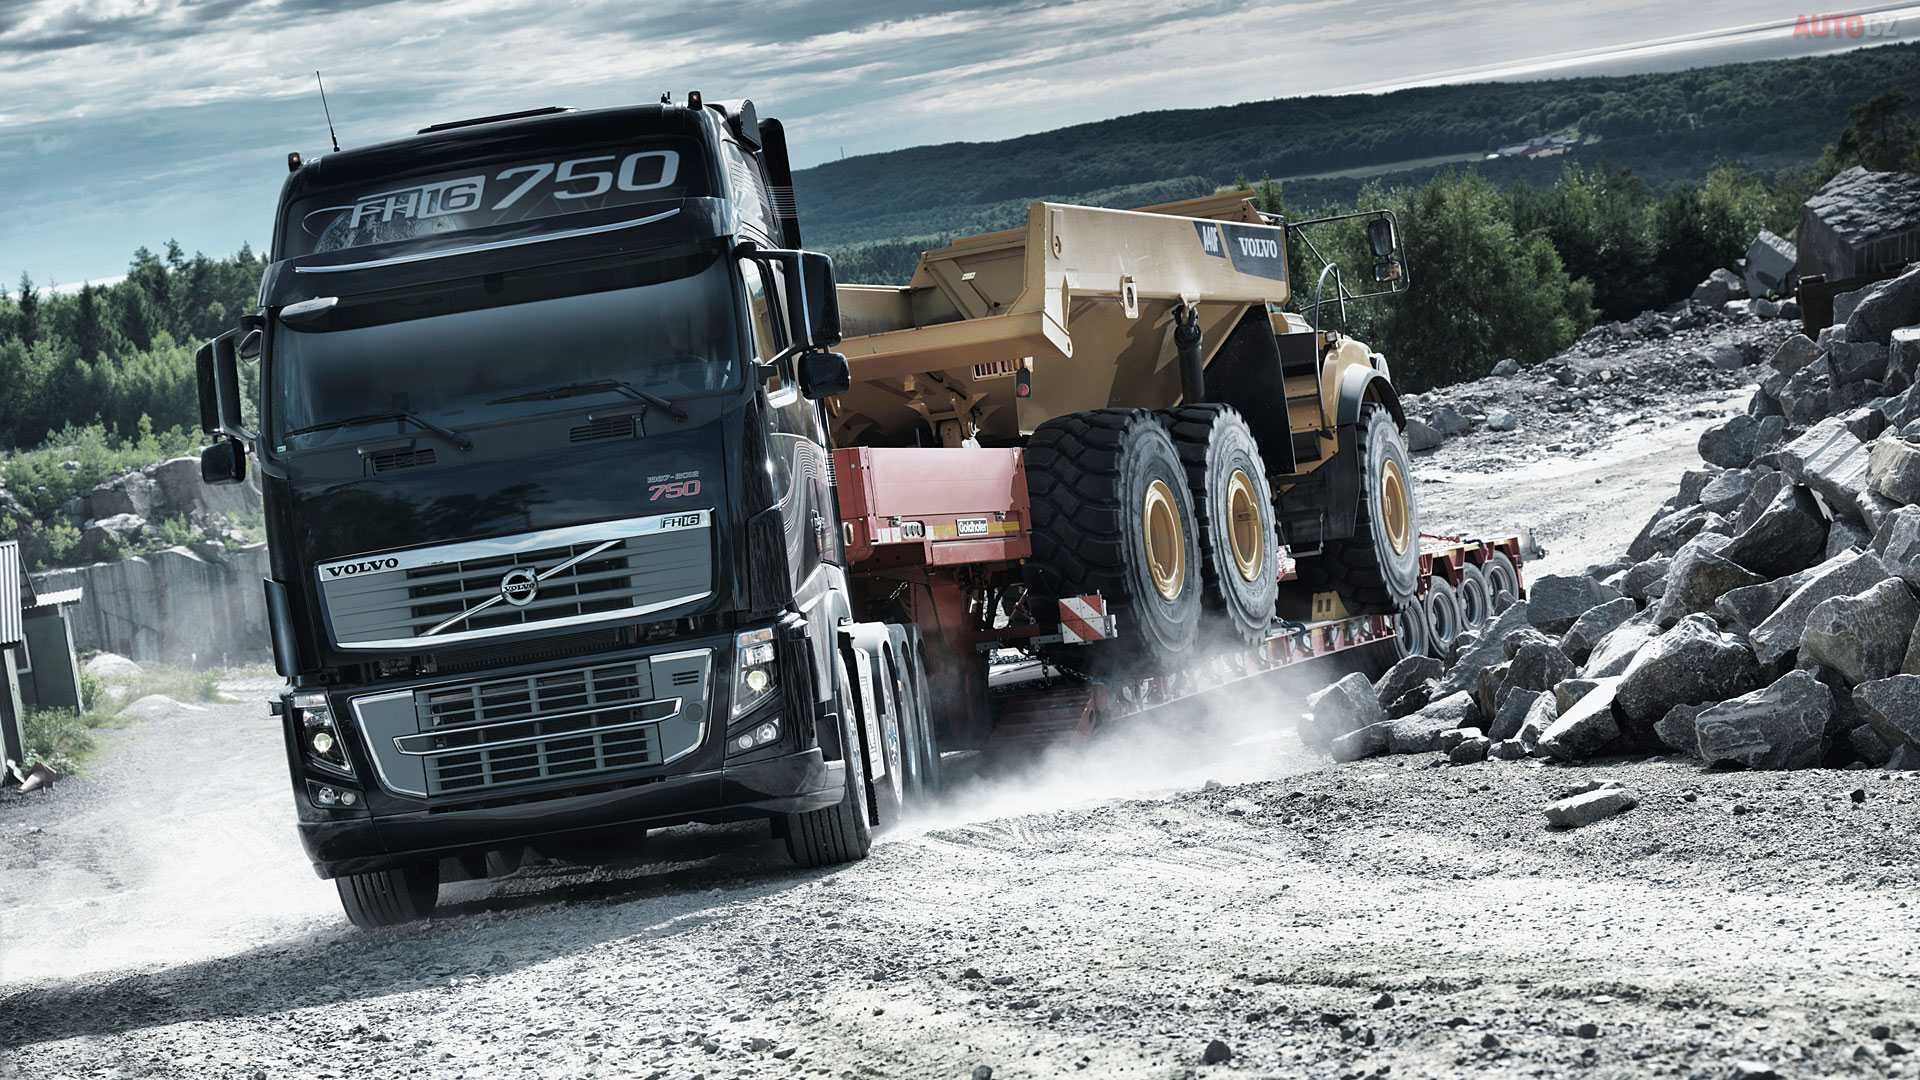 HD Scania Truck Wallpapers Pickup Truck Free HD Wallpapers